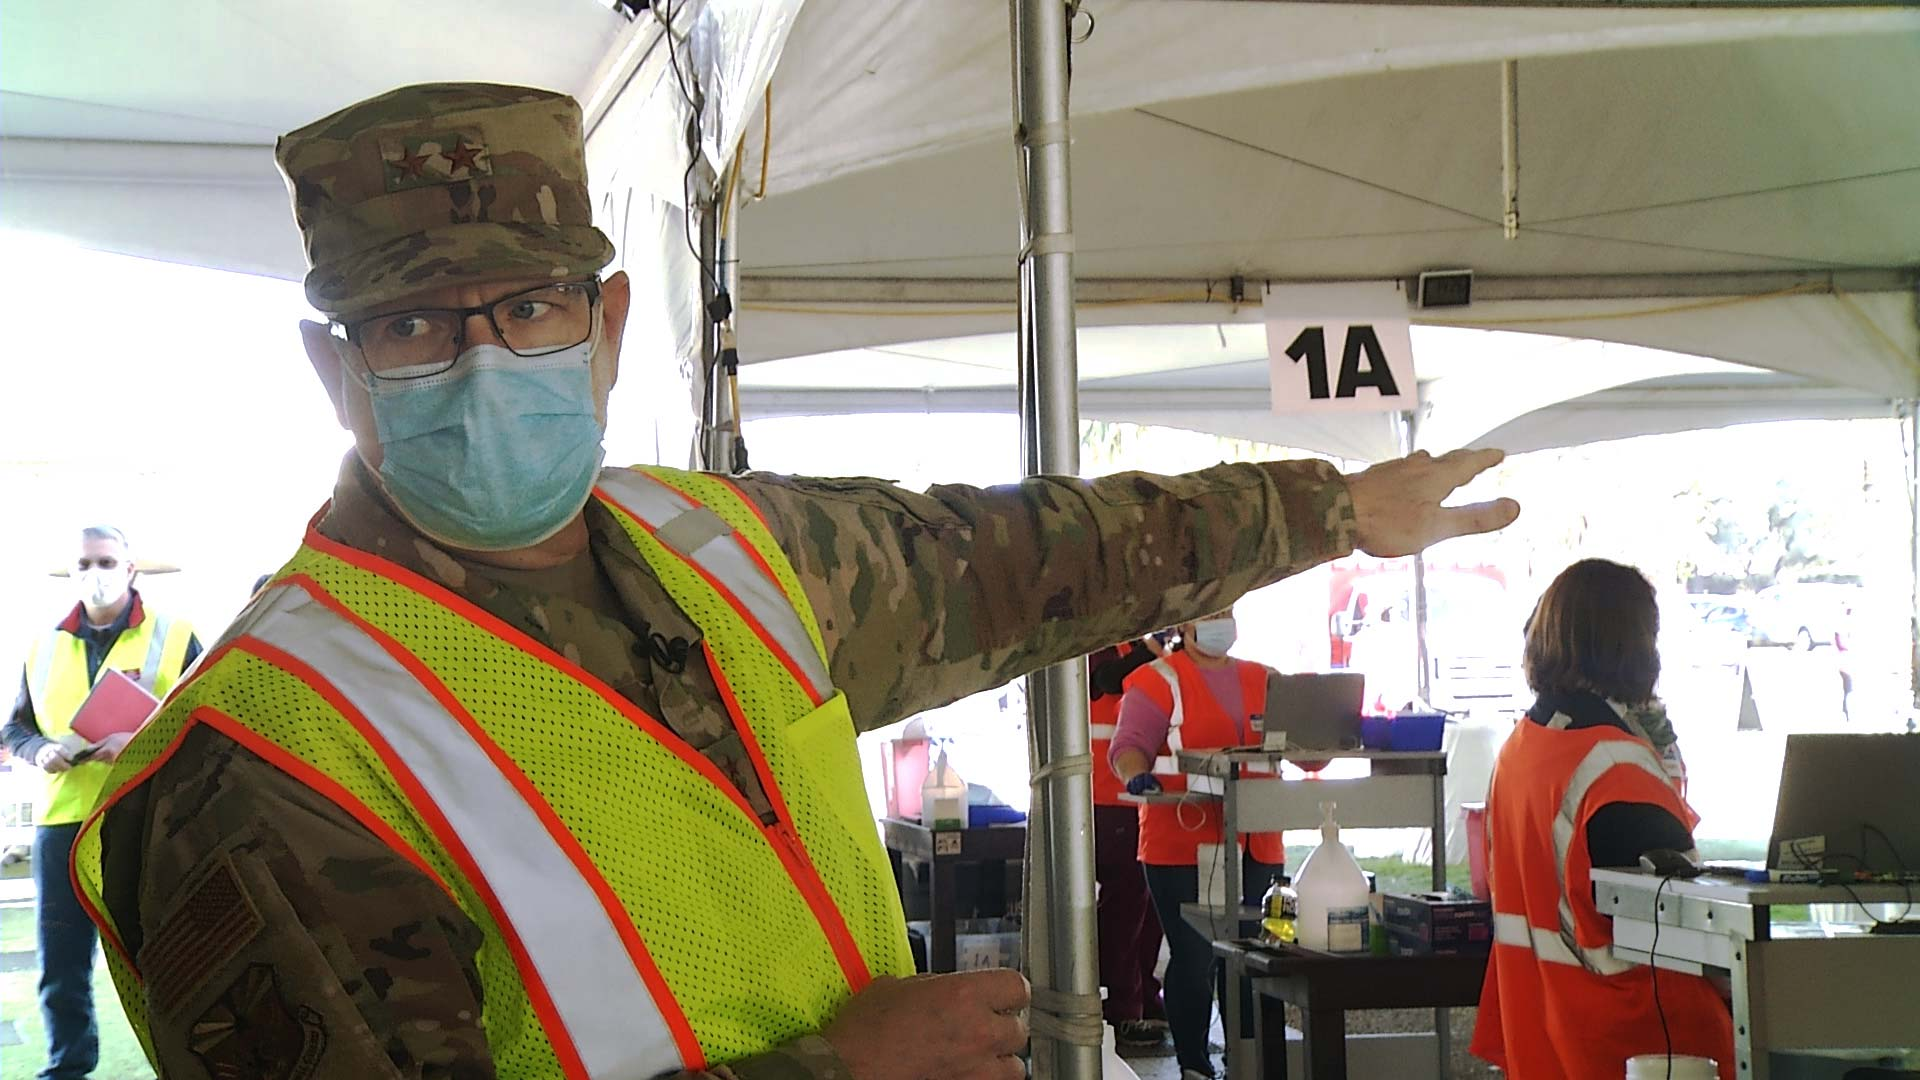 Maj. Gen. Michael McGuire, who oversees the Arizona National Guard, at the state-run COVID-19 vaccination site at the University of Arizona on Feb. 18, 2021.